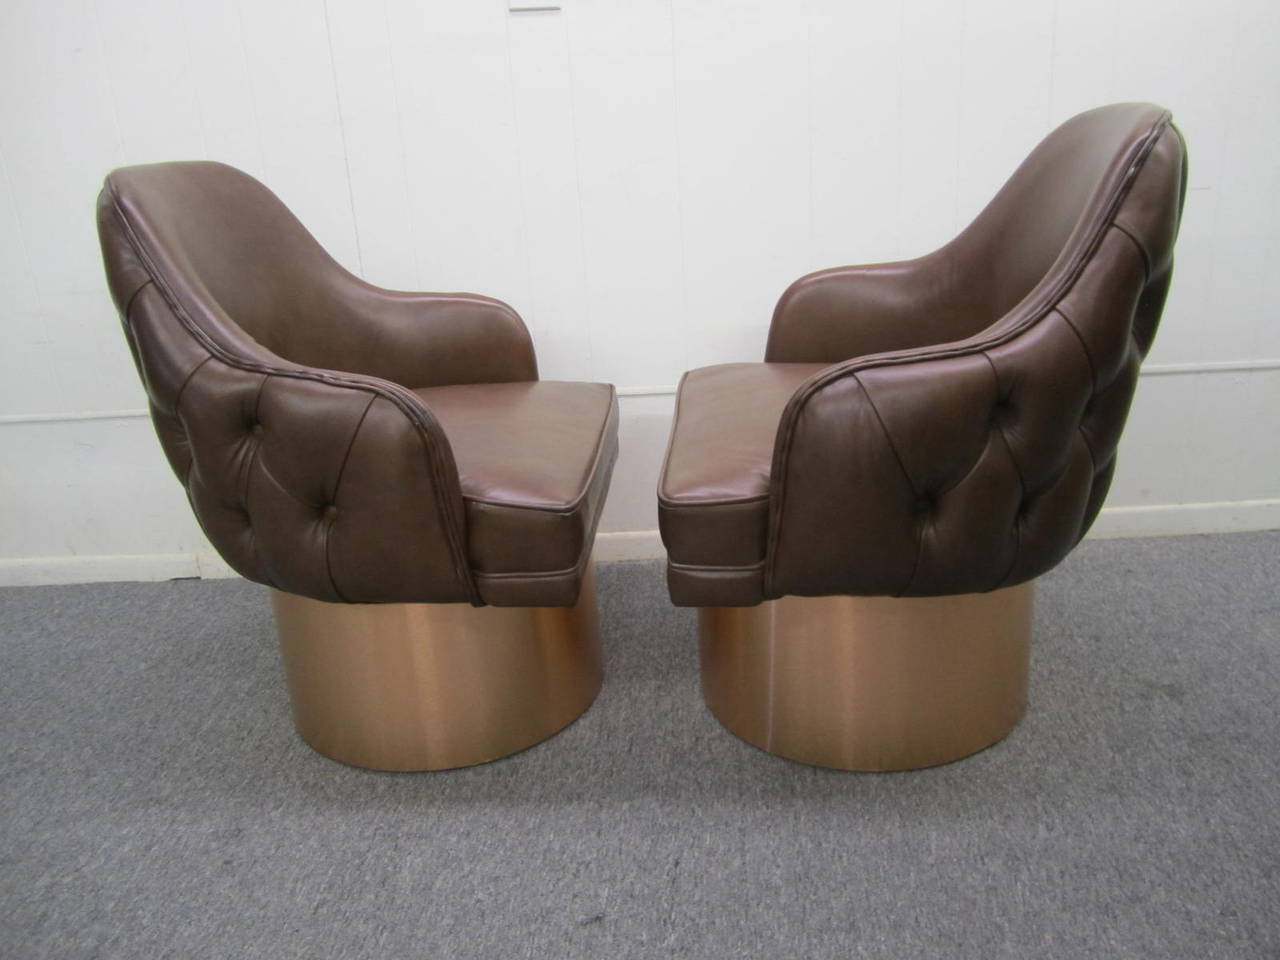 Newest Chocolate Brown Leather Tufted Swivel Chairs Intended For Excellent Set Of Four Milo Baughman Style Tufted Back Leather Swivel (View 14 of 20)